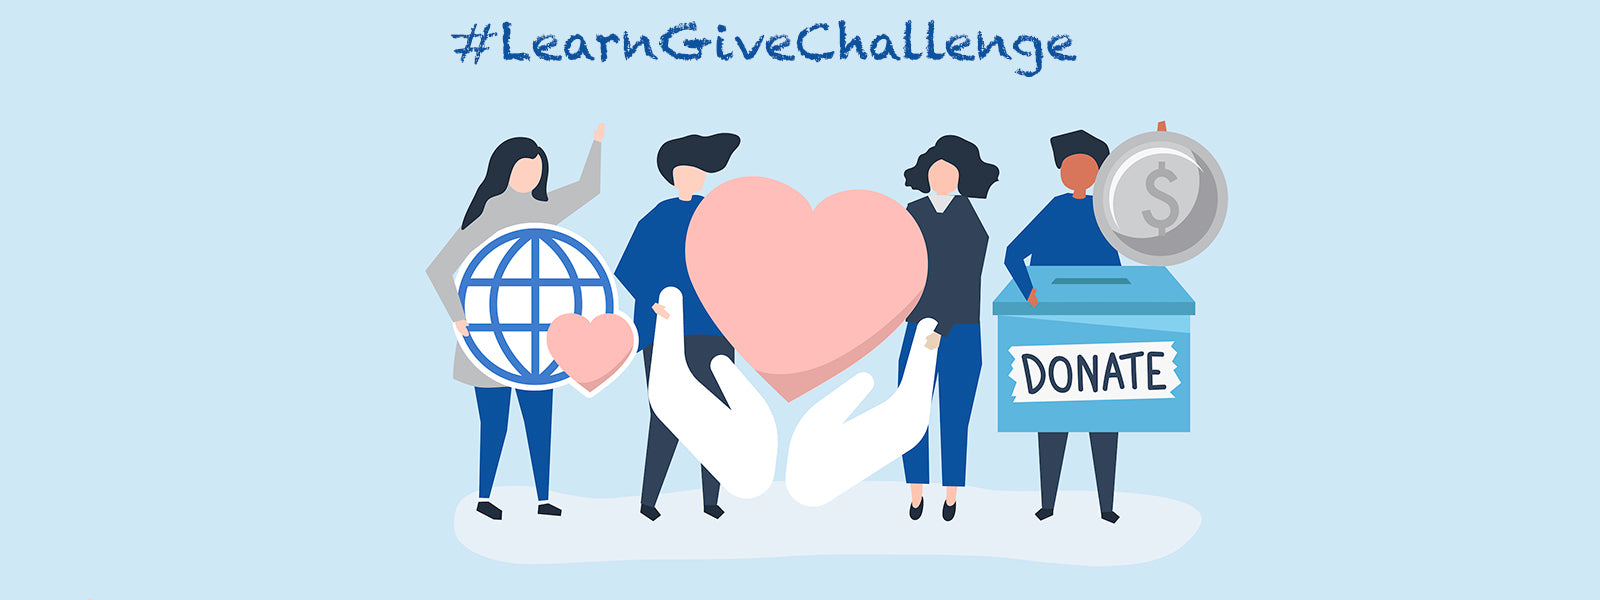 Take the #LearnGiveChallenge